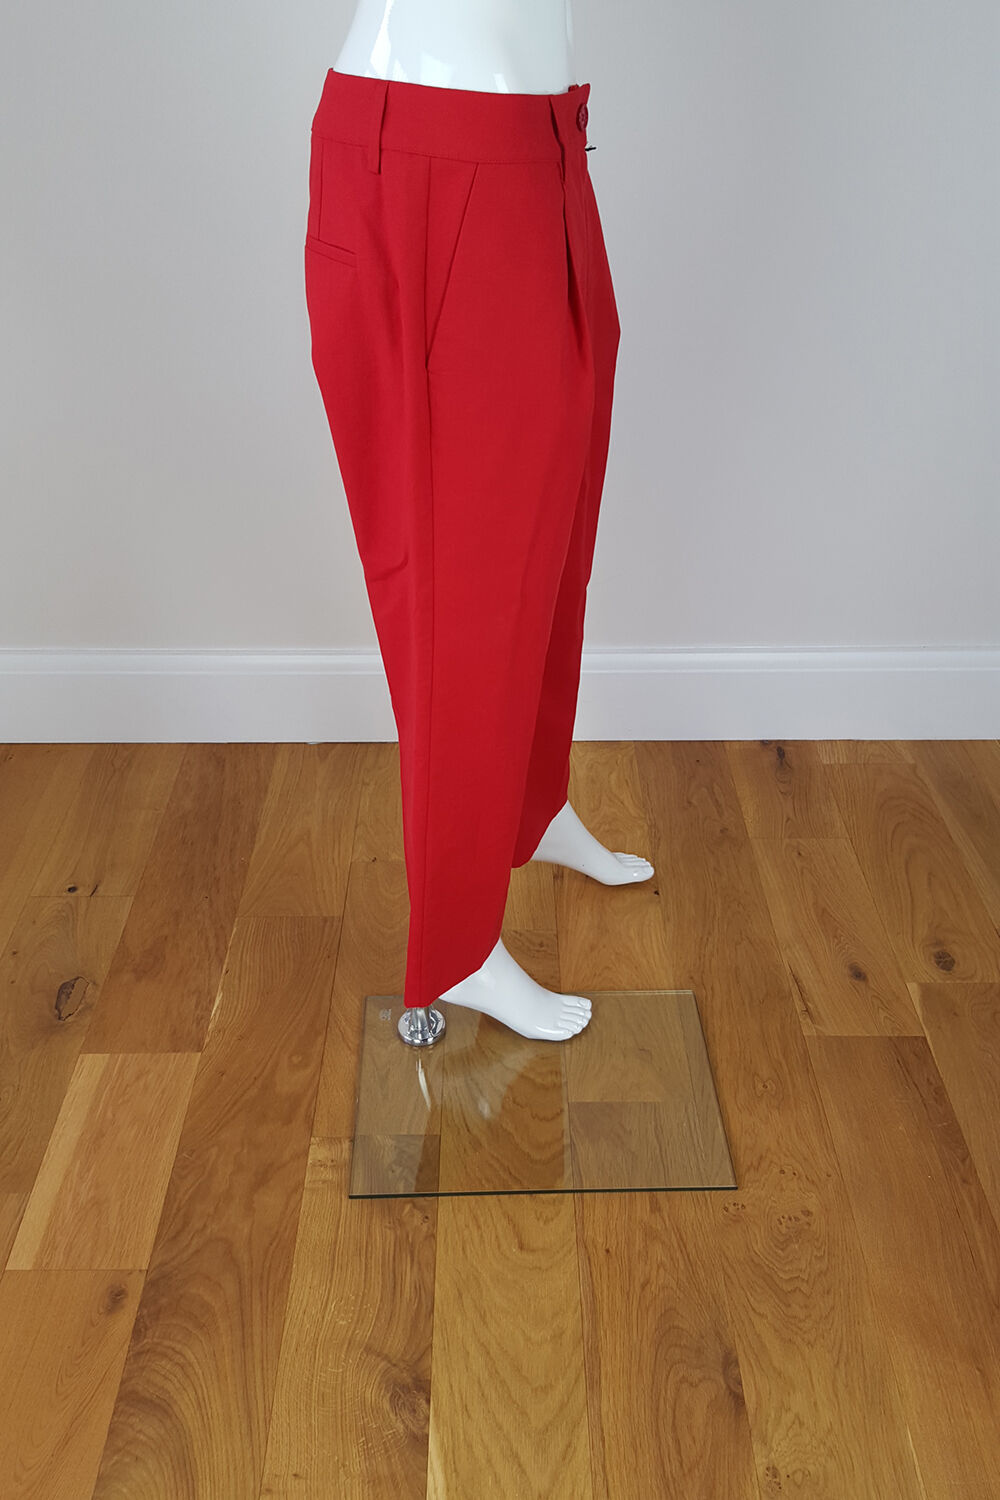 LOVE MOSCHINO CHERRY CHERRY CHERRY rot CAPRI TROUSERS (UK 10) 56c7a9